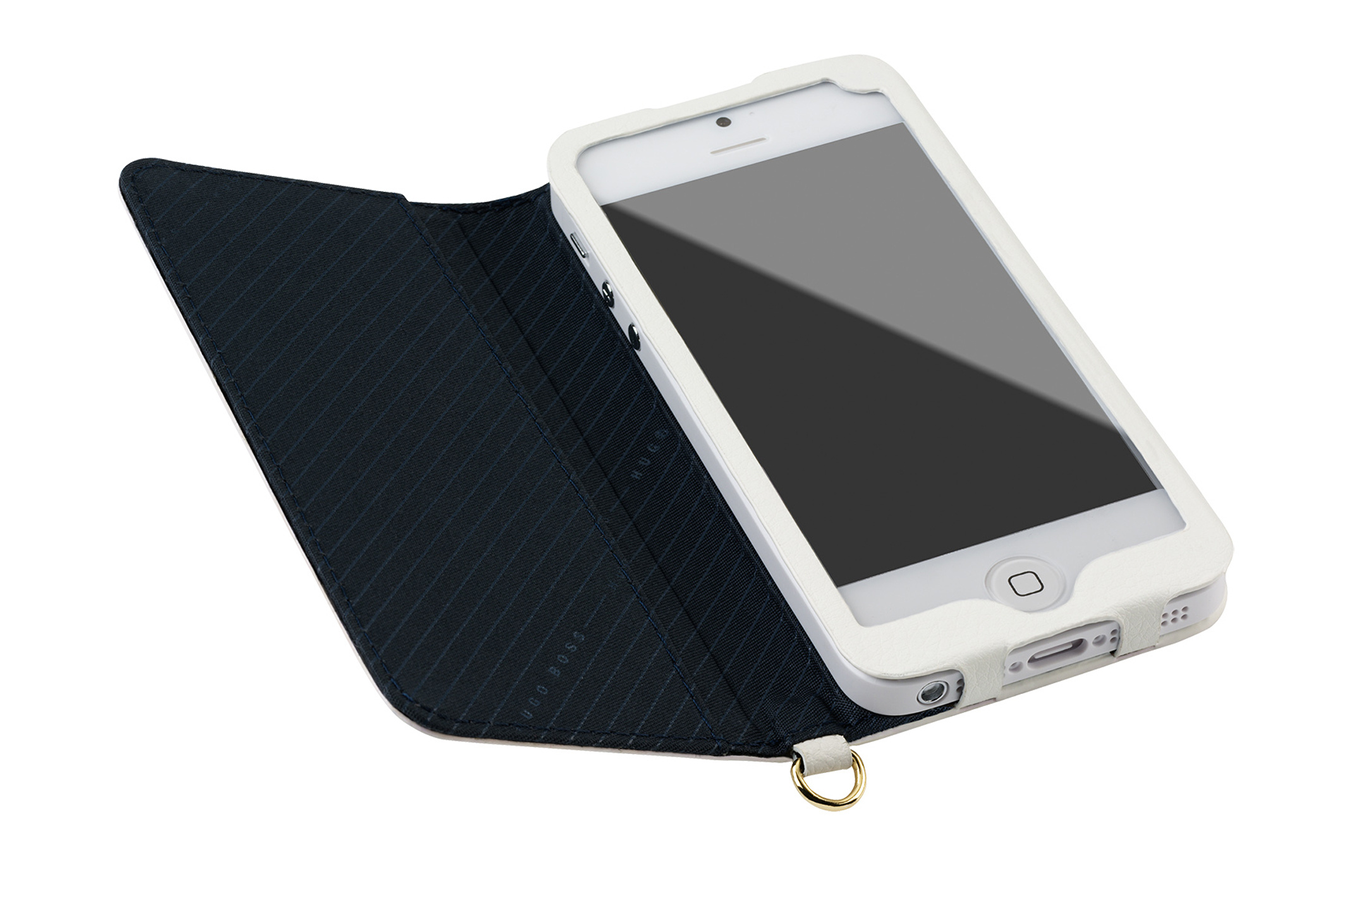 Housse pour iphone hugo boss etui folio cuir hugo boss for Housse pour iphone 5